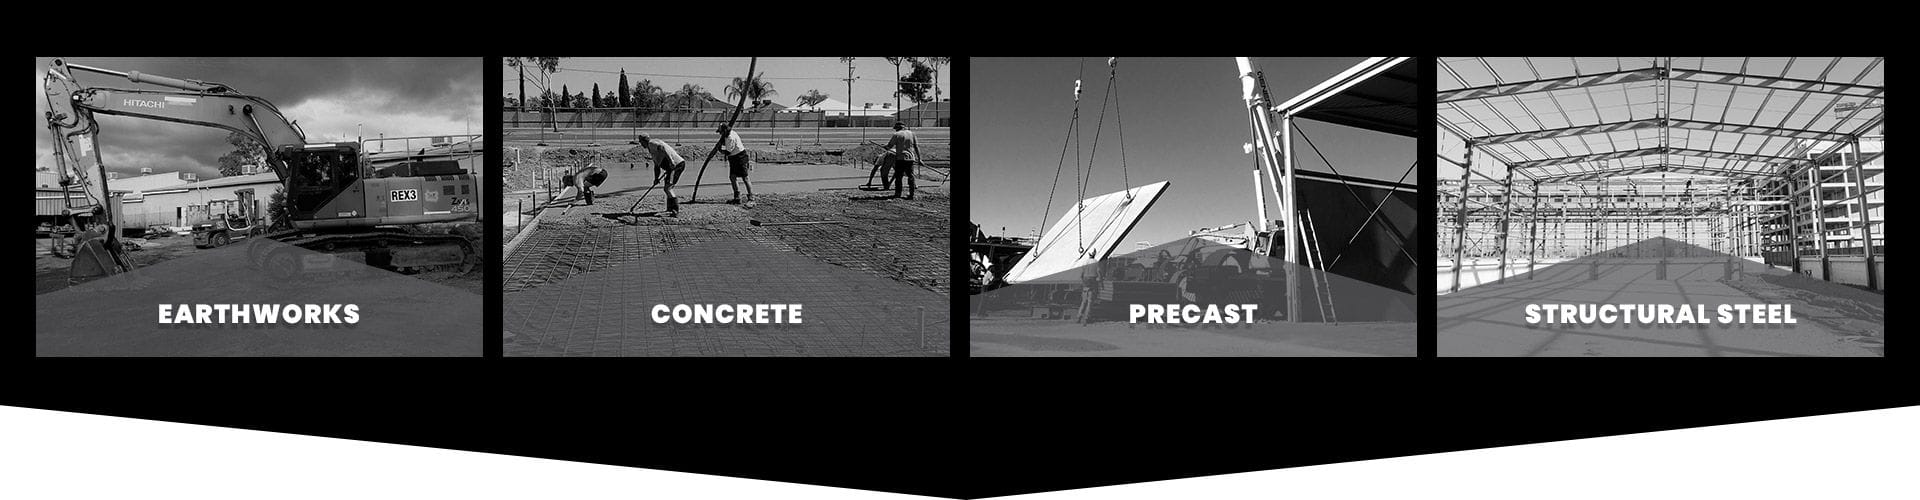 Robust Contracting provides earthworks, concrete, precast, structural steel and transport services